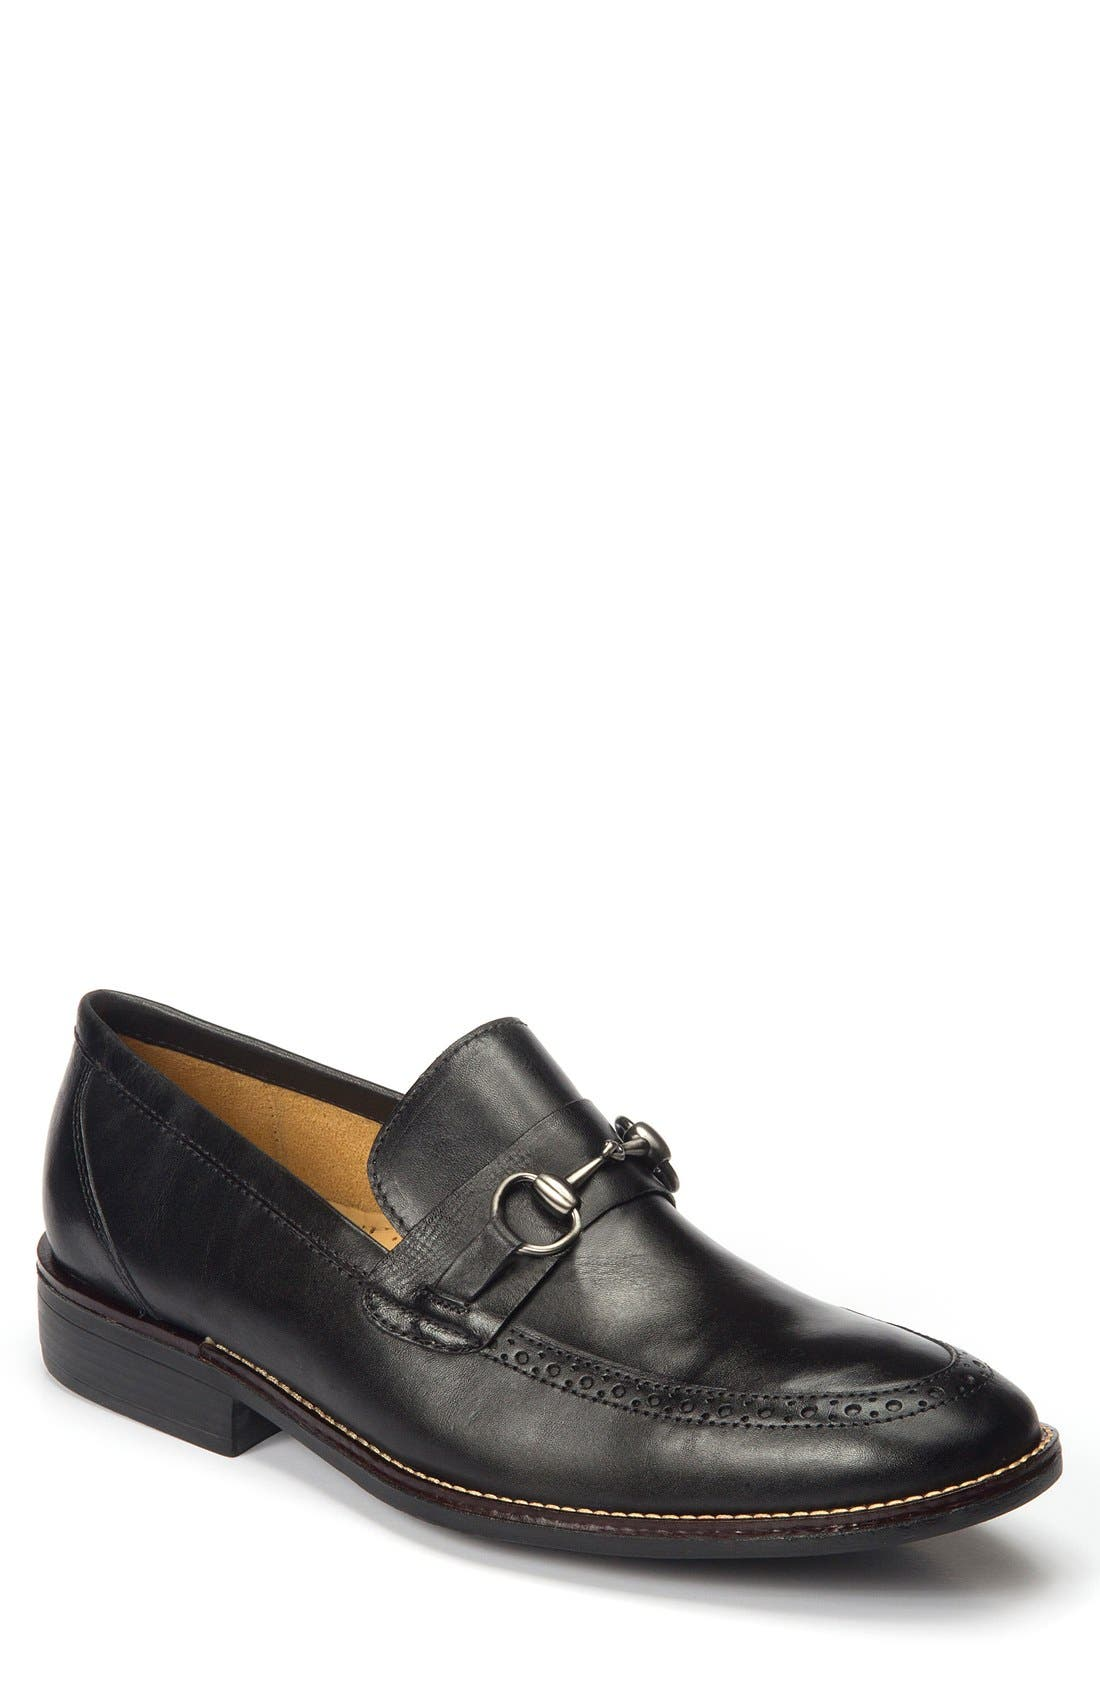 Wesley Bit Loafer,                         Main,                         color, Black Leather